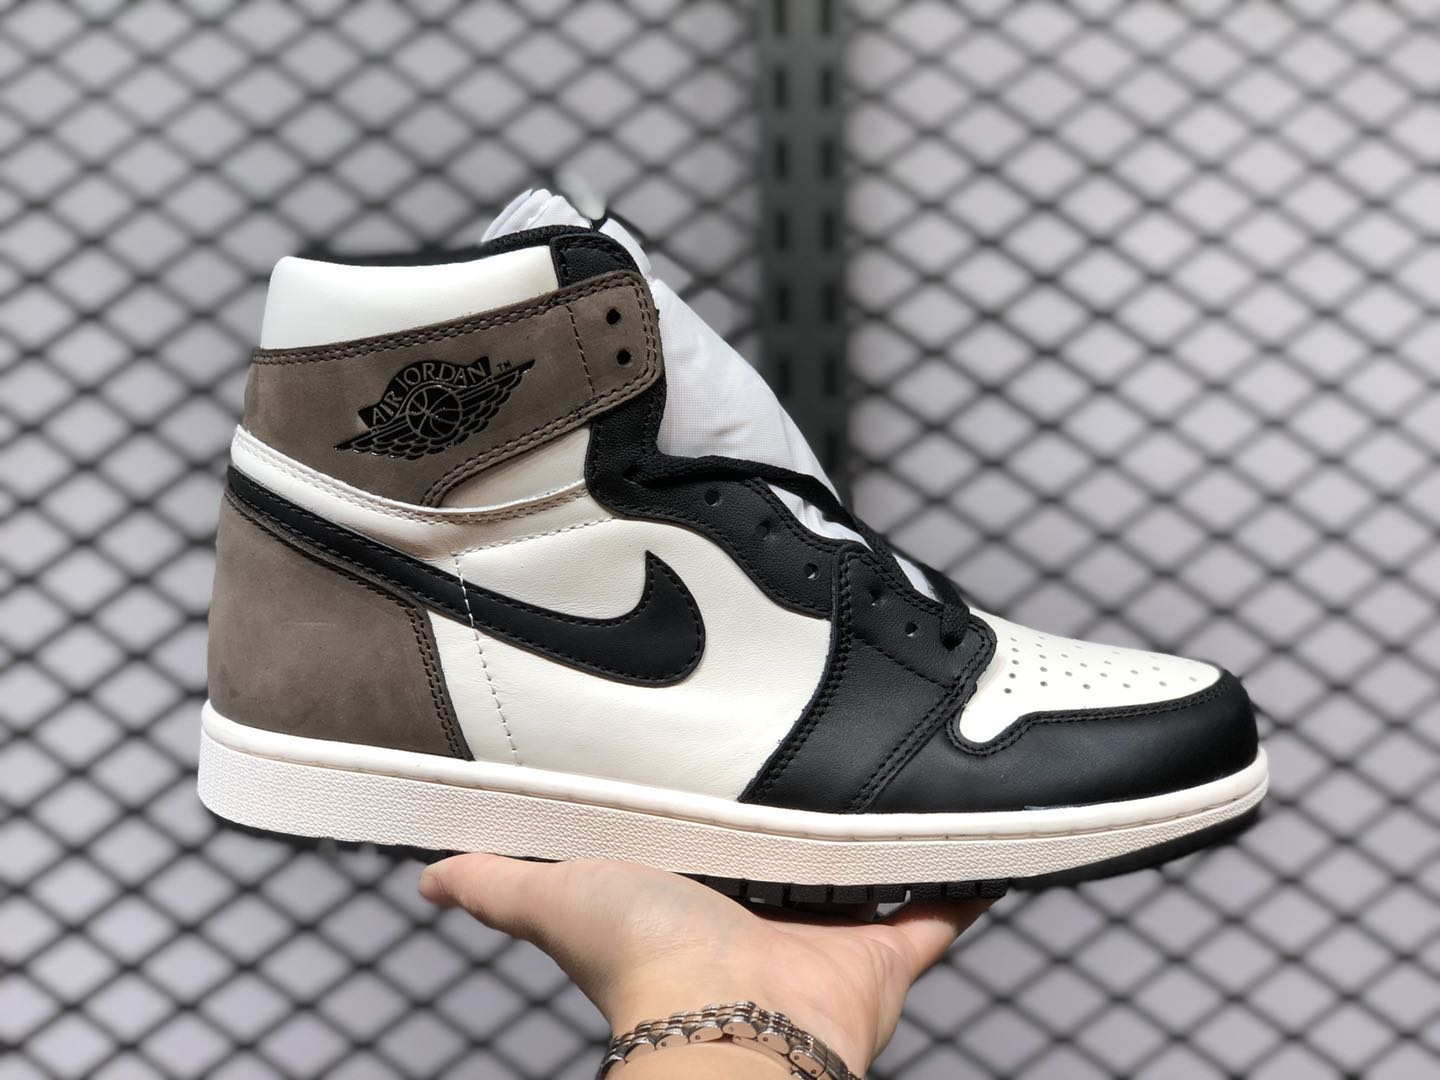 Air Jordan 1 High OG Sail/Dark Mocha-Black For Buy 555088-105